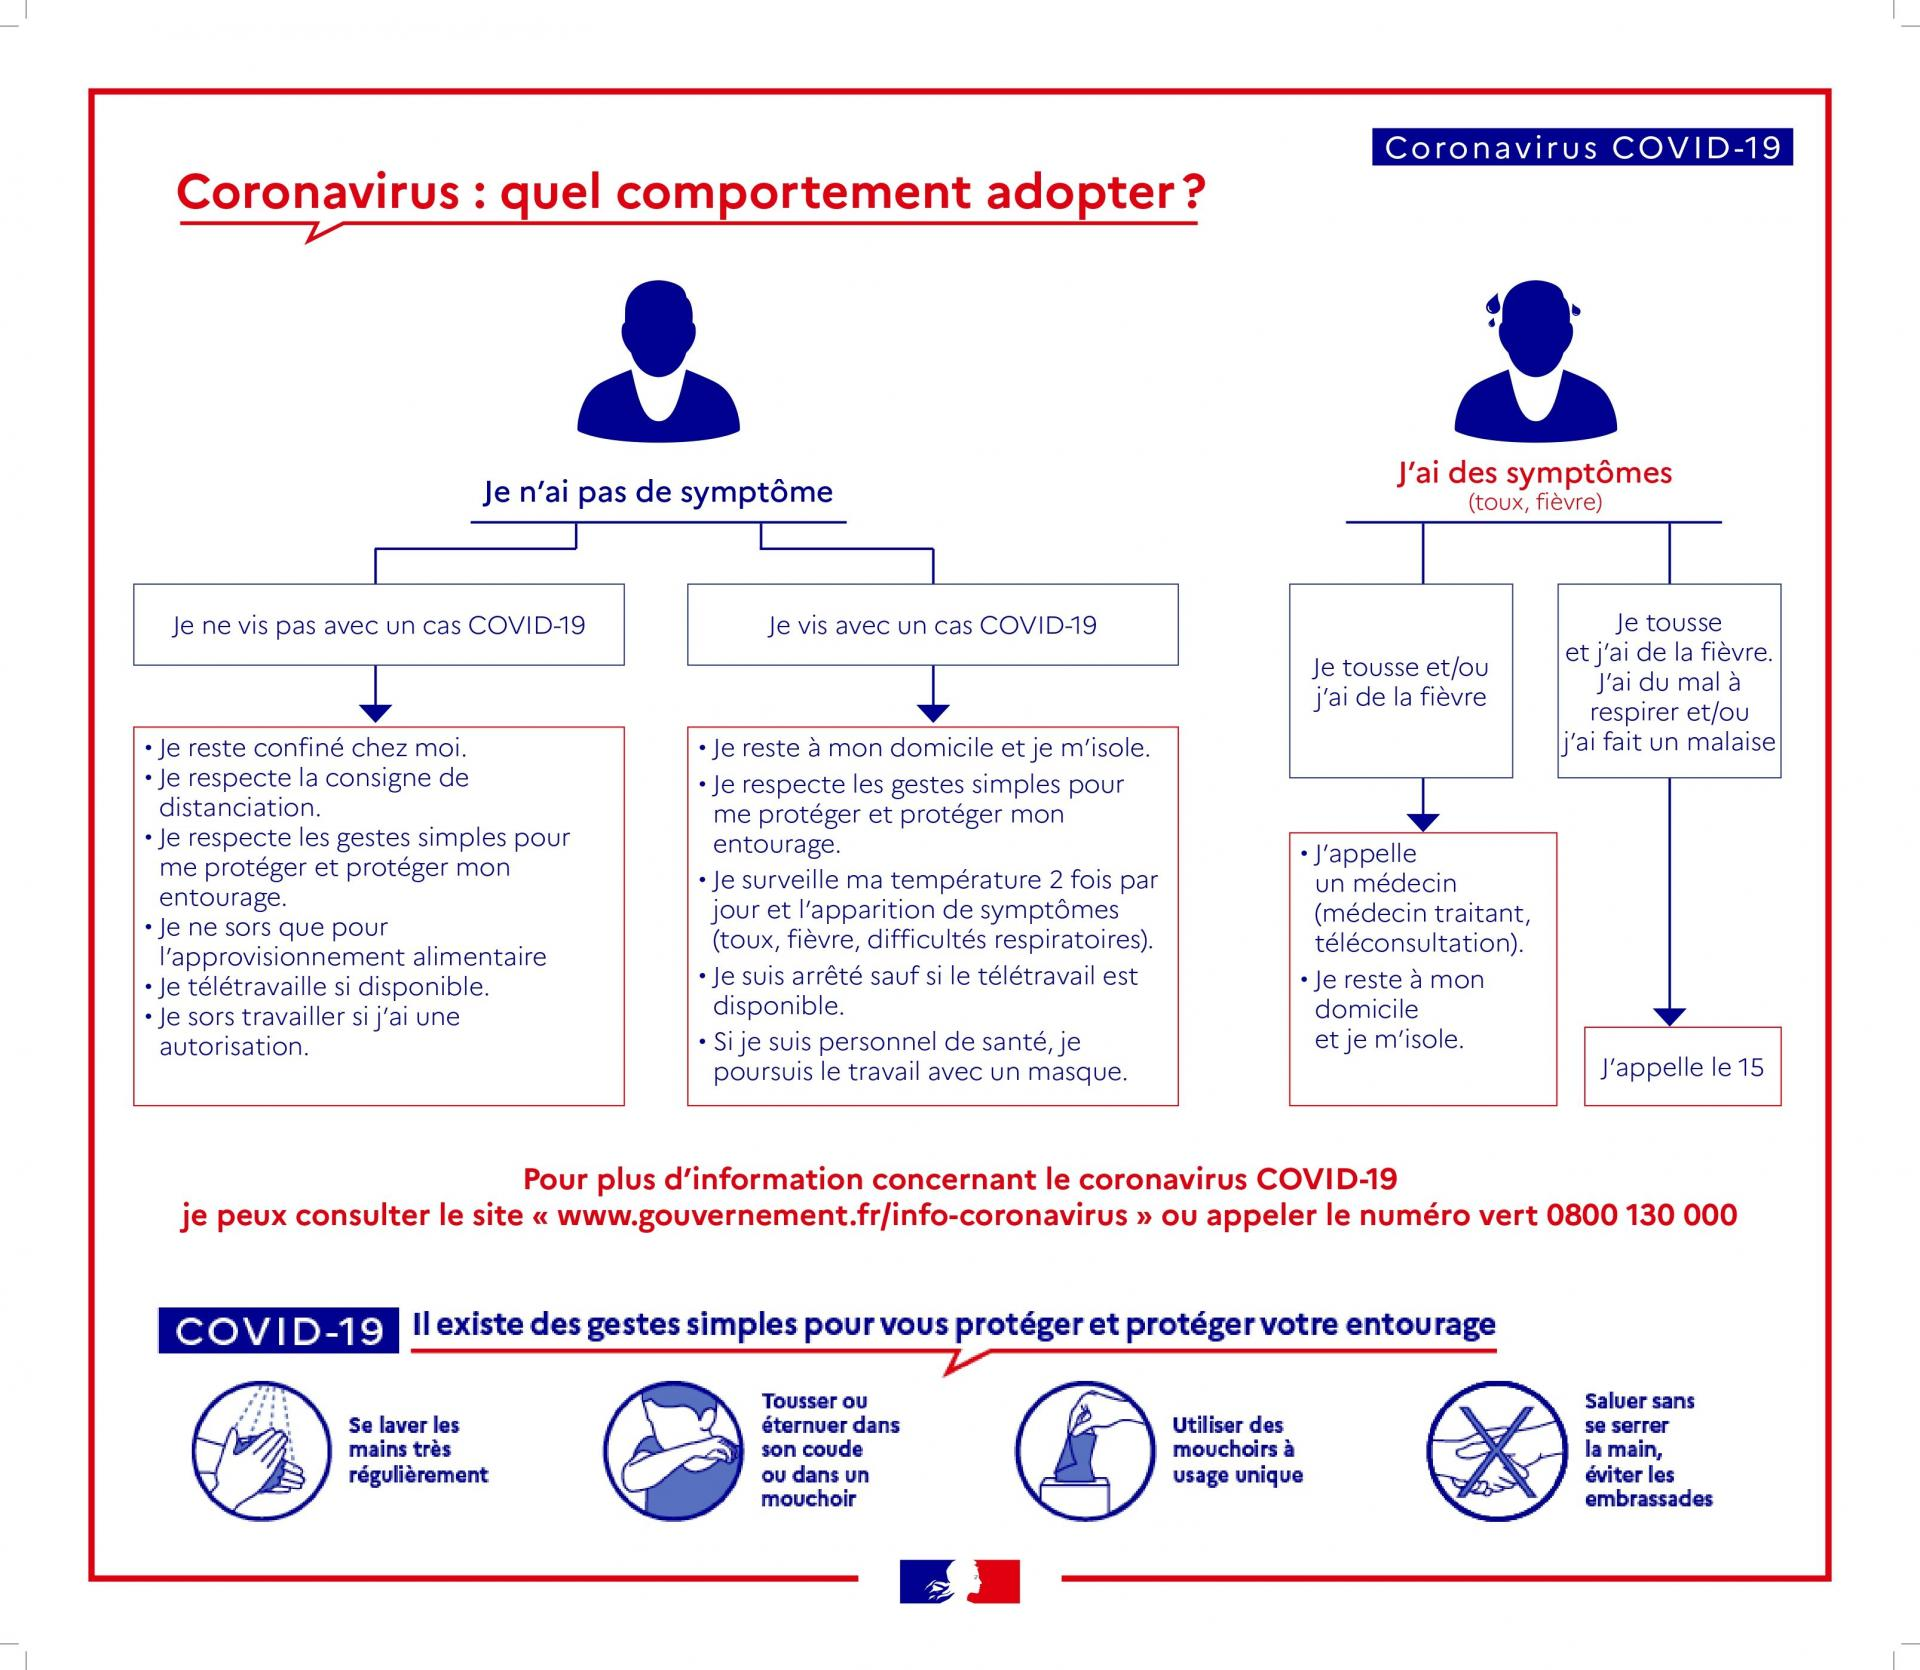 COVID-19 : quel comportement adopter ?